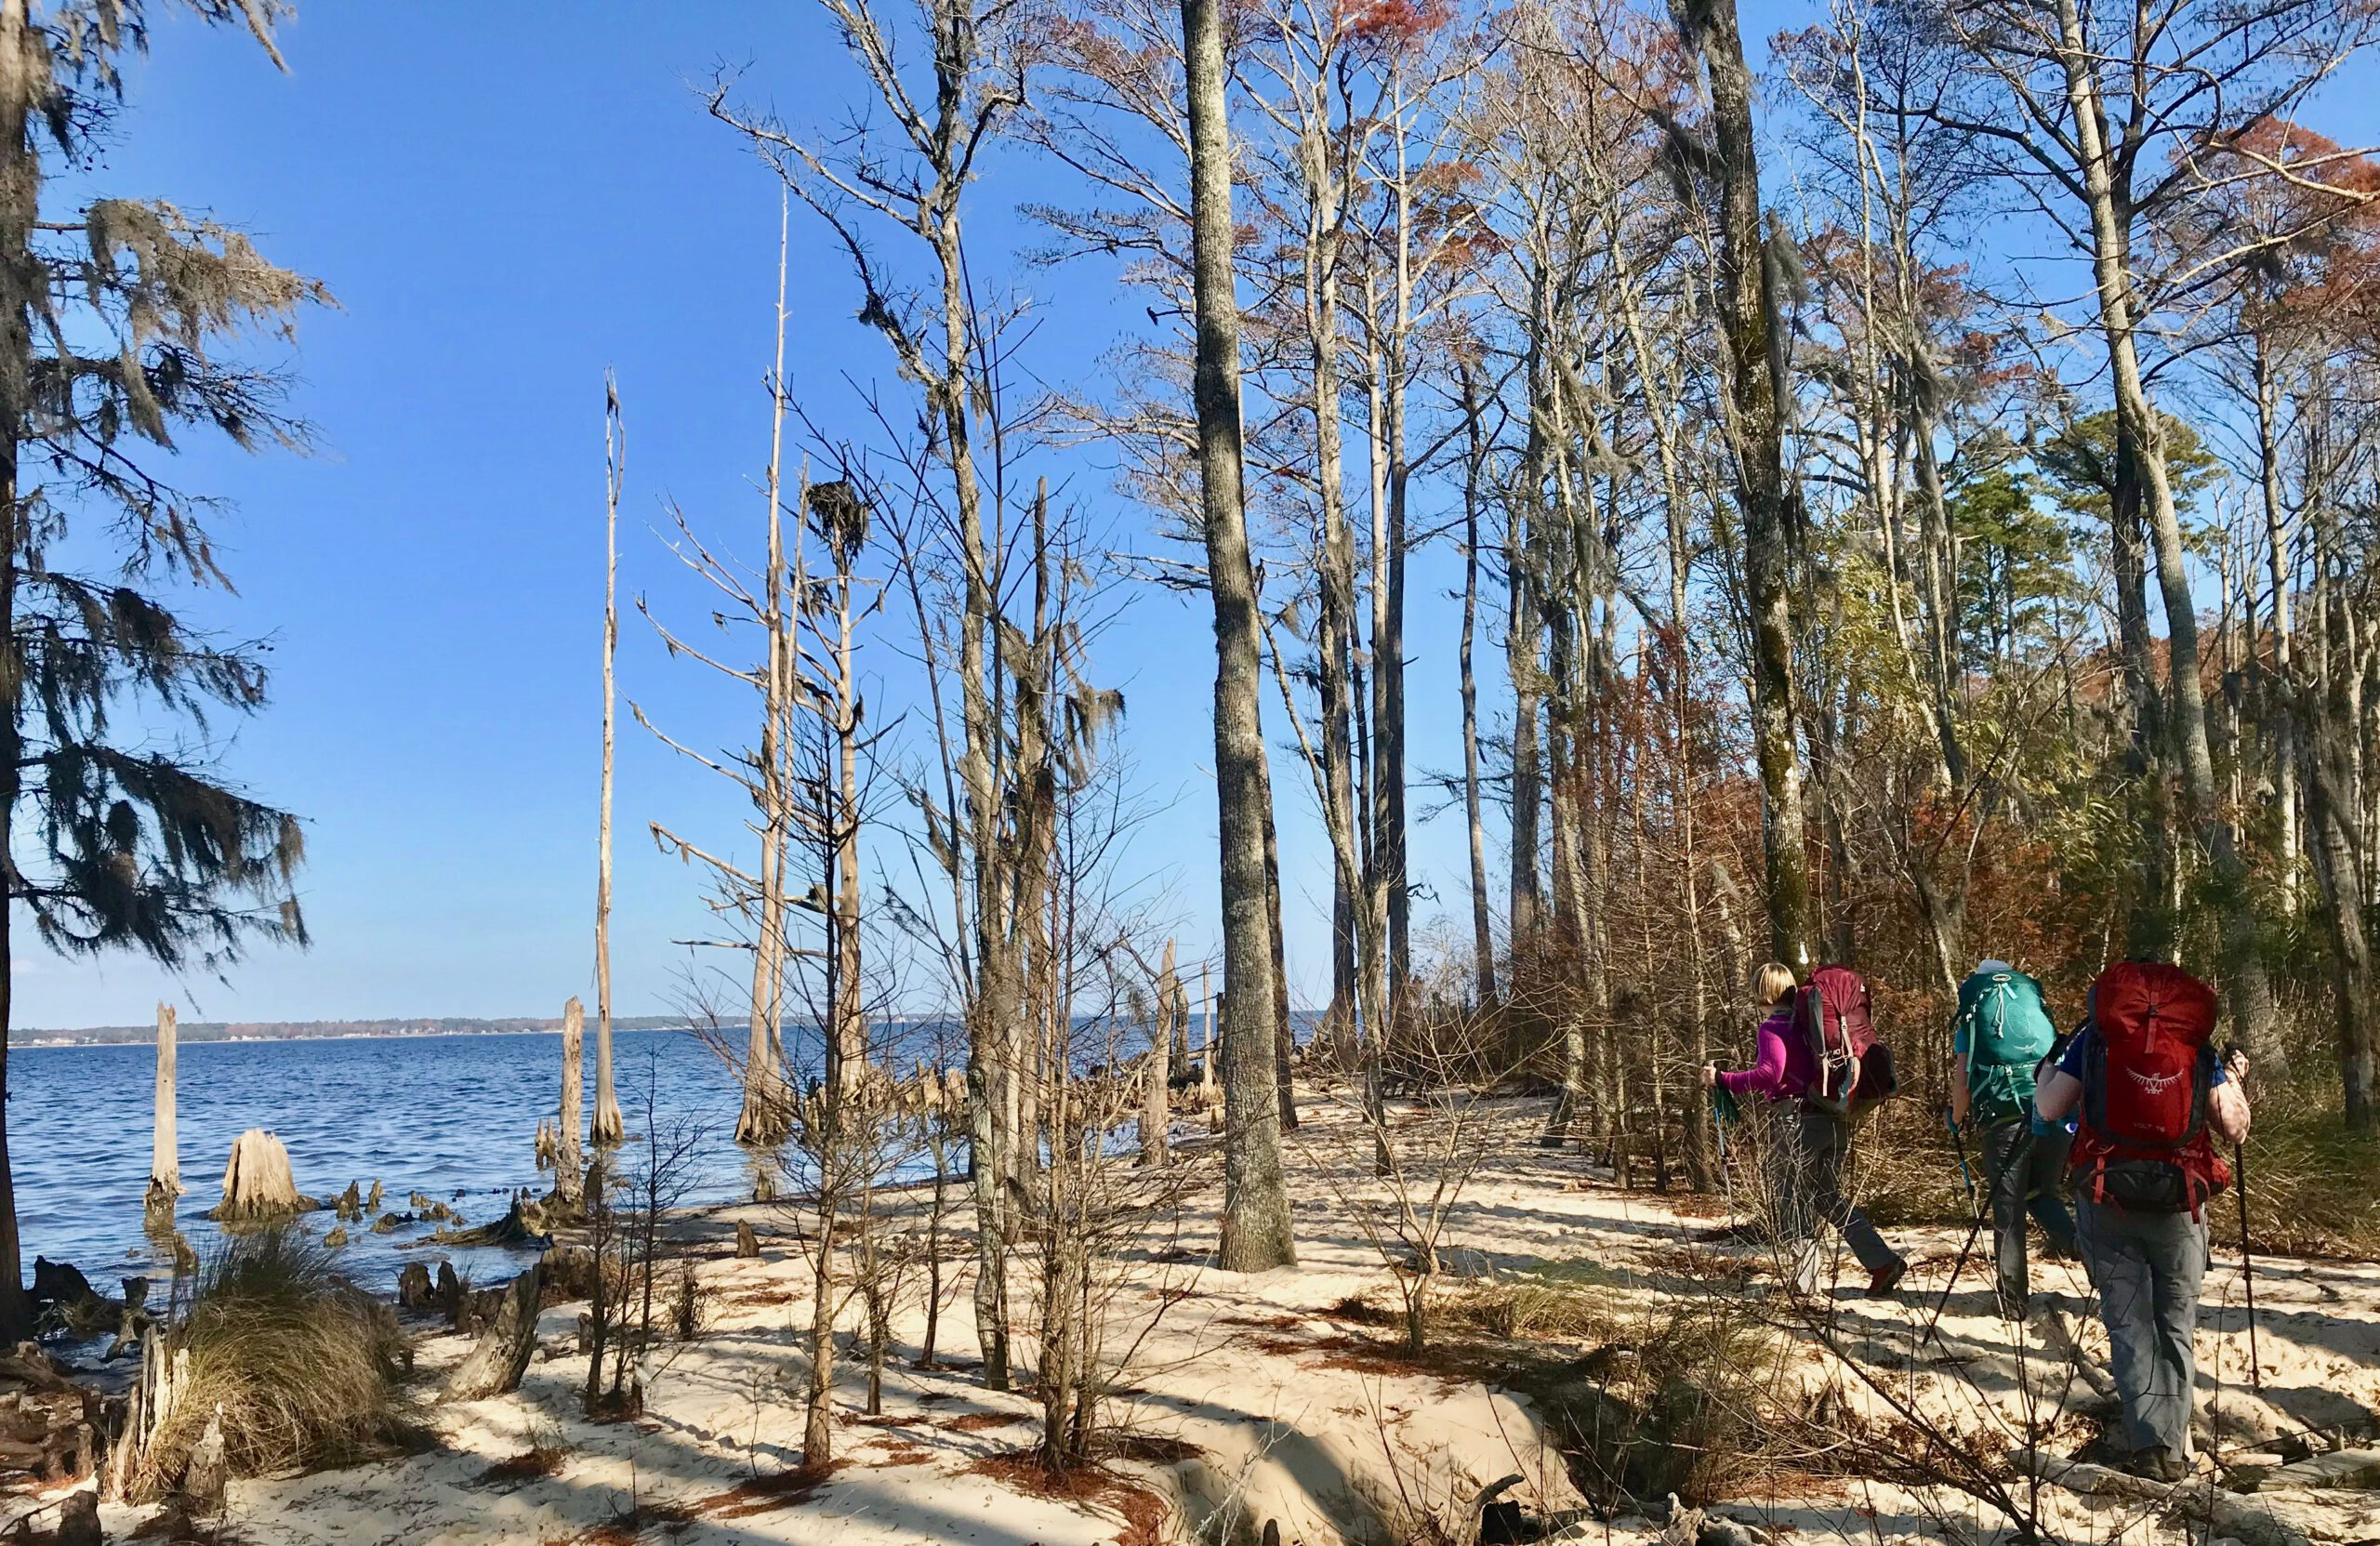 A holiday hike in the Croatan National Forest.